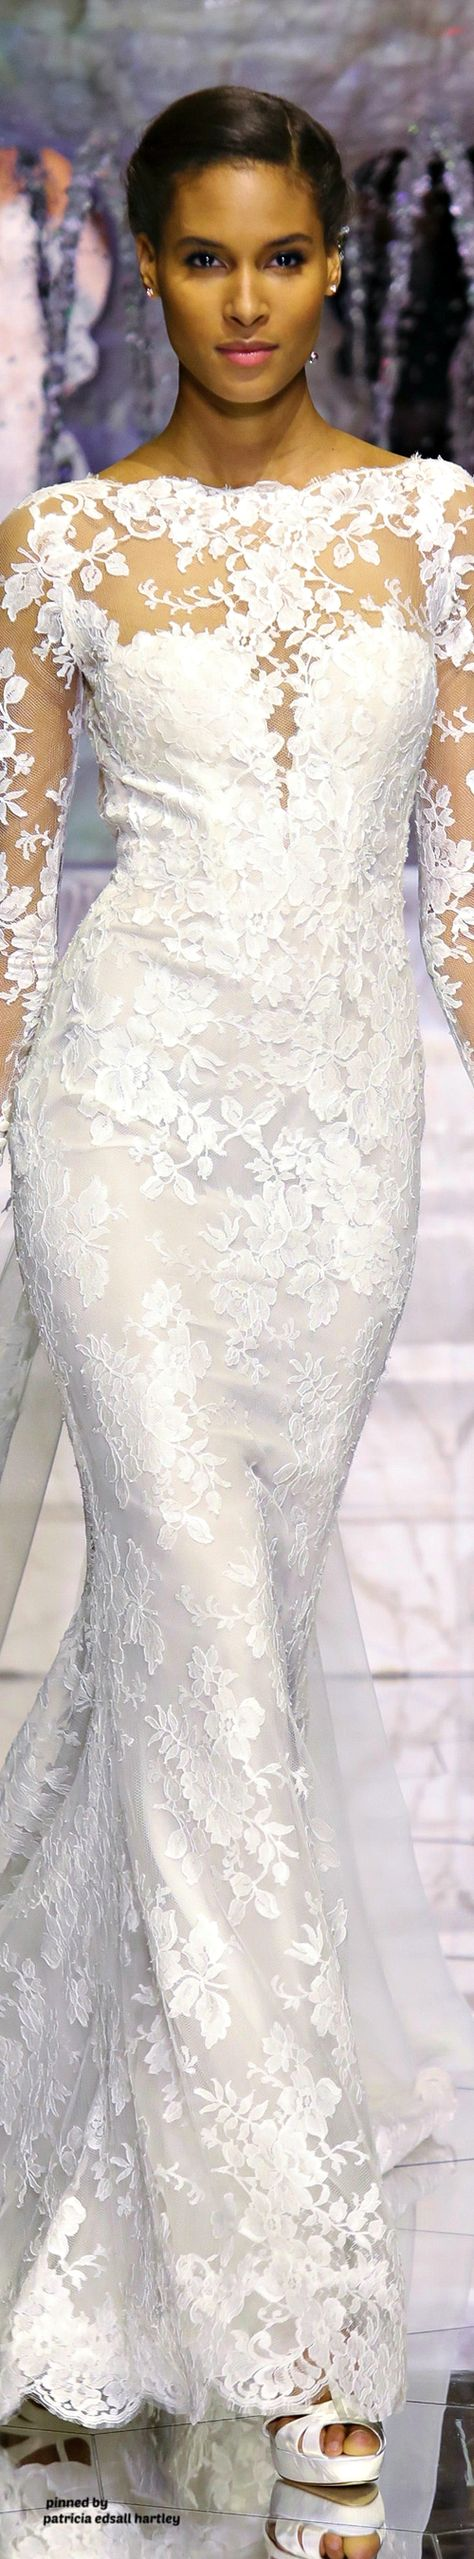 Pronovias spring wedding ideas pinterest wedding dress